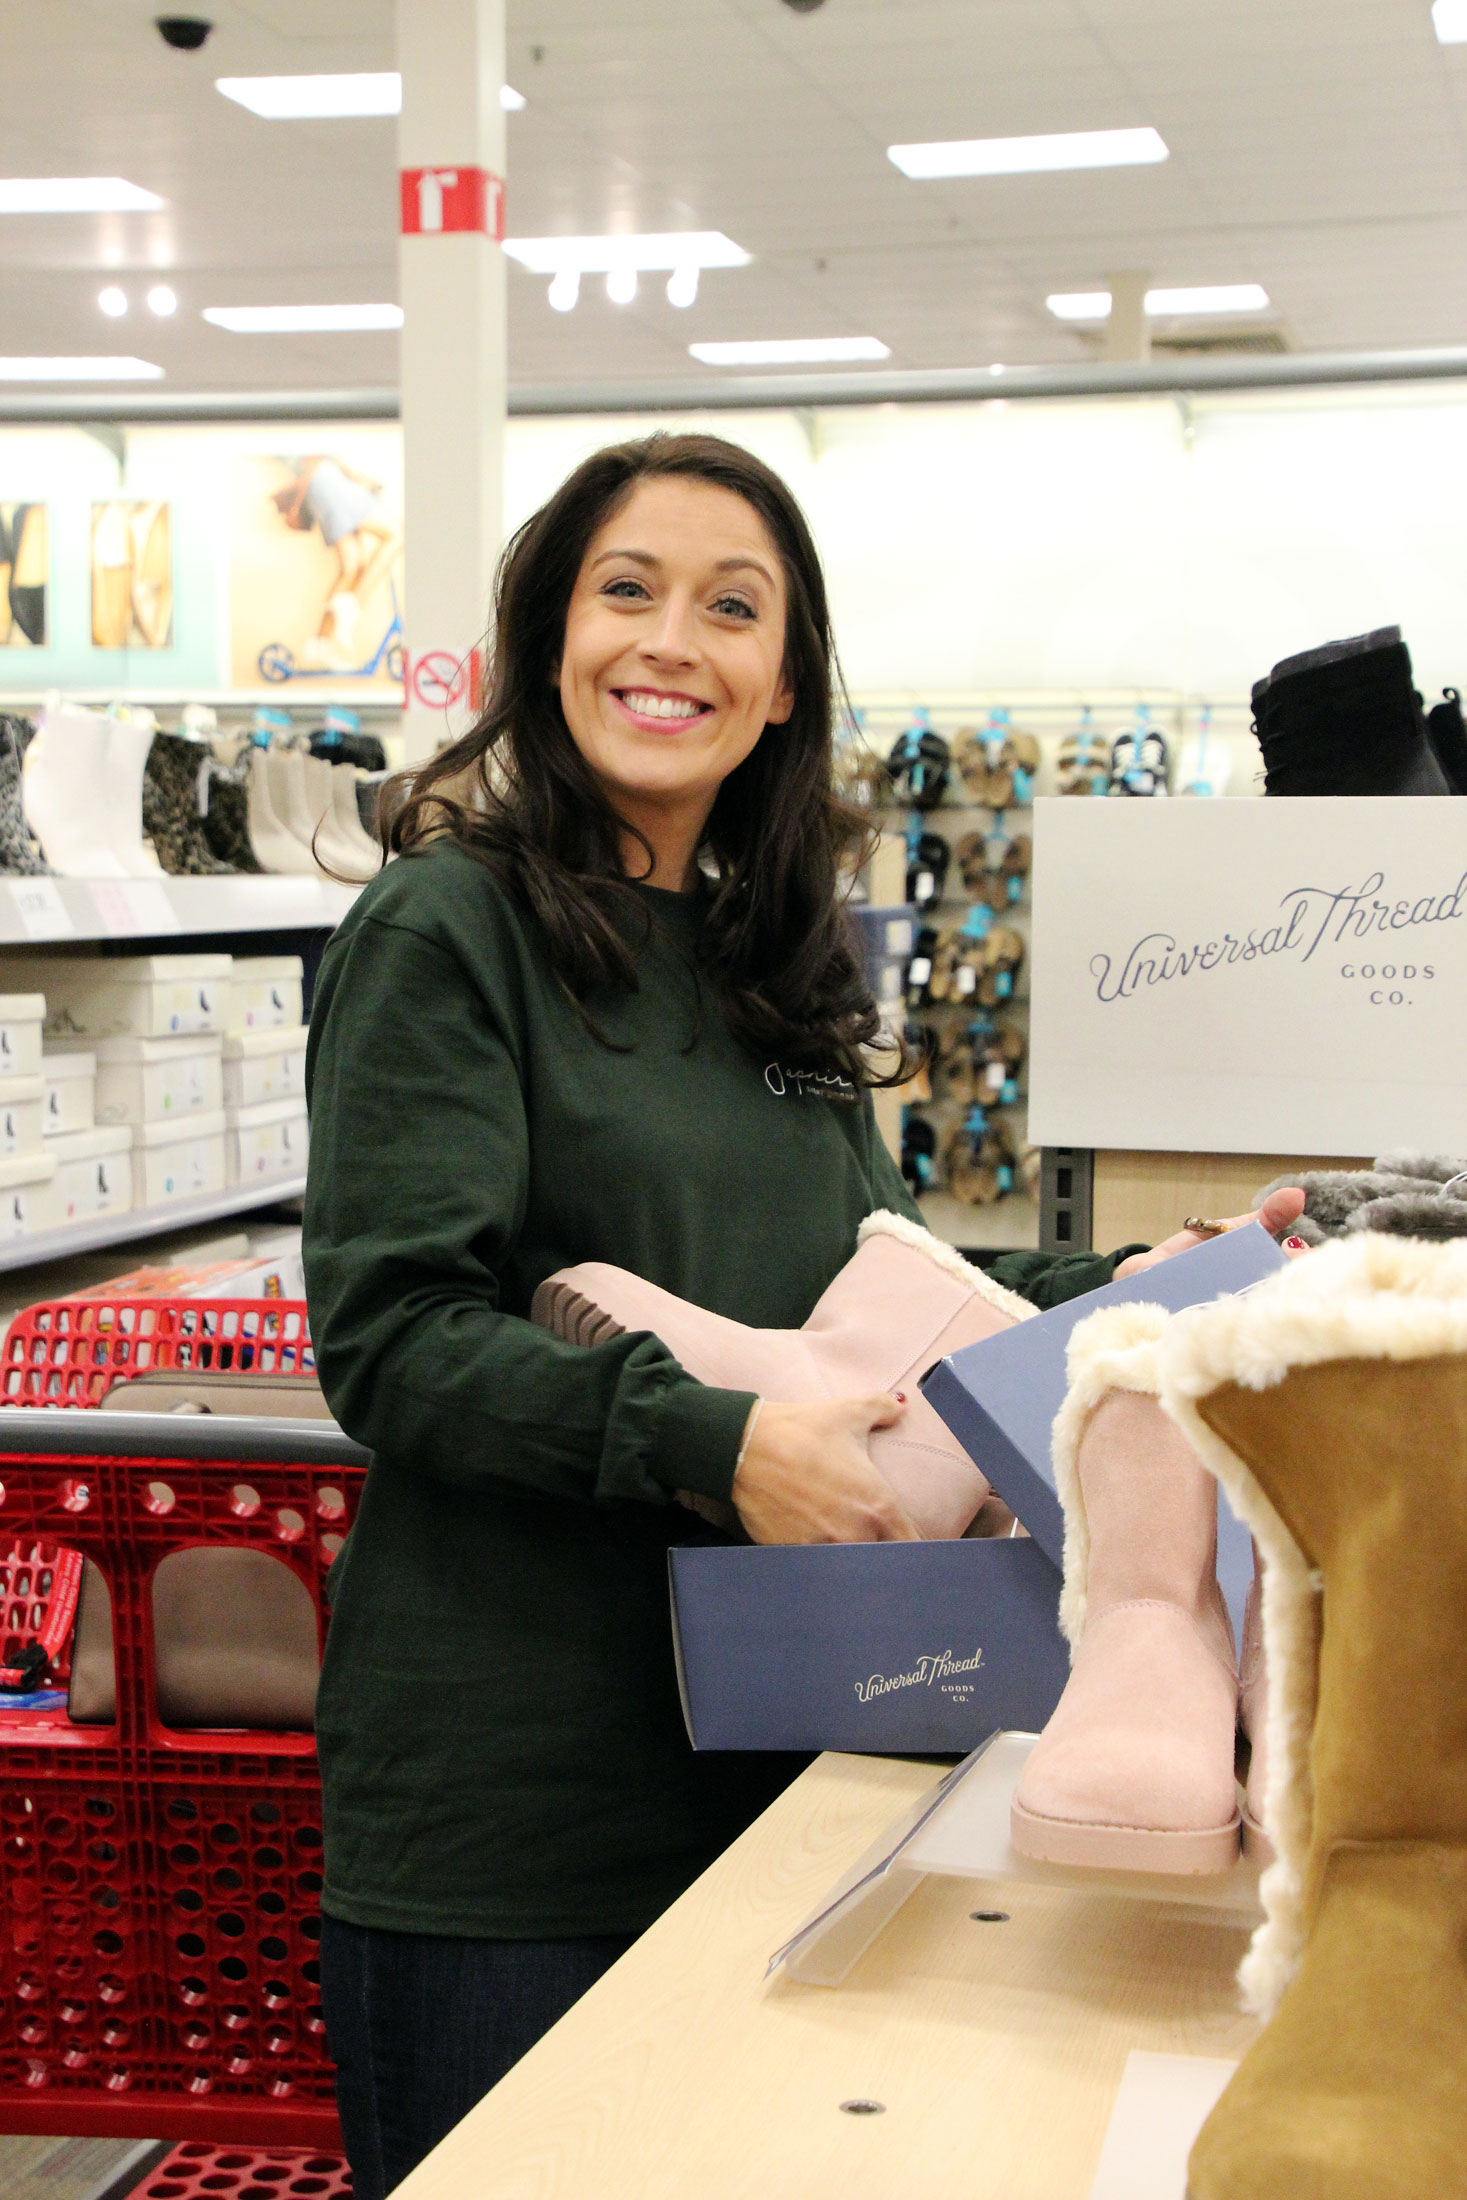 SEG staff shops for winter boots at Target